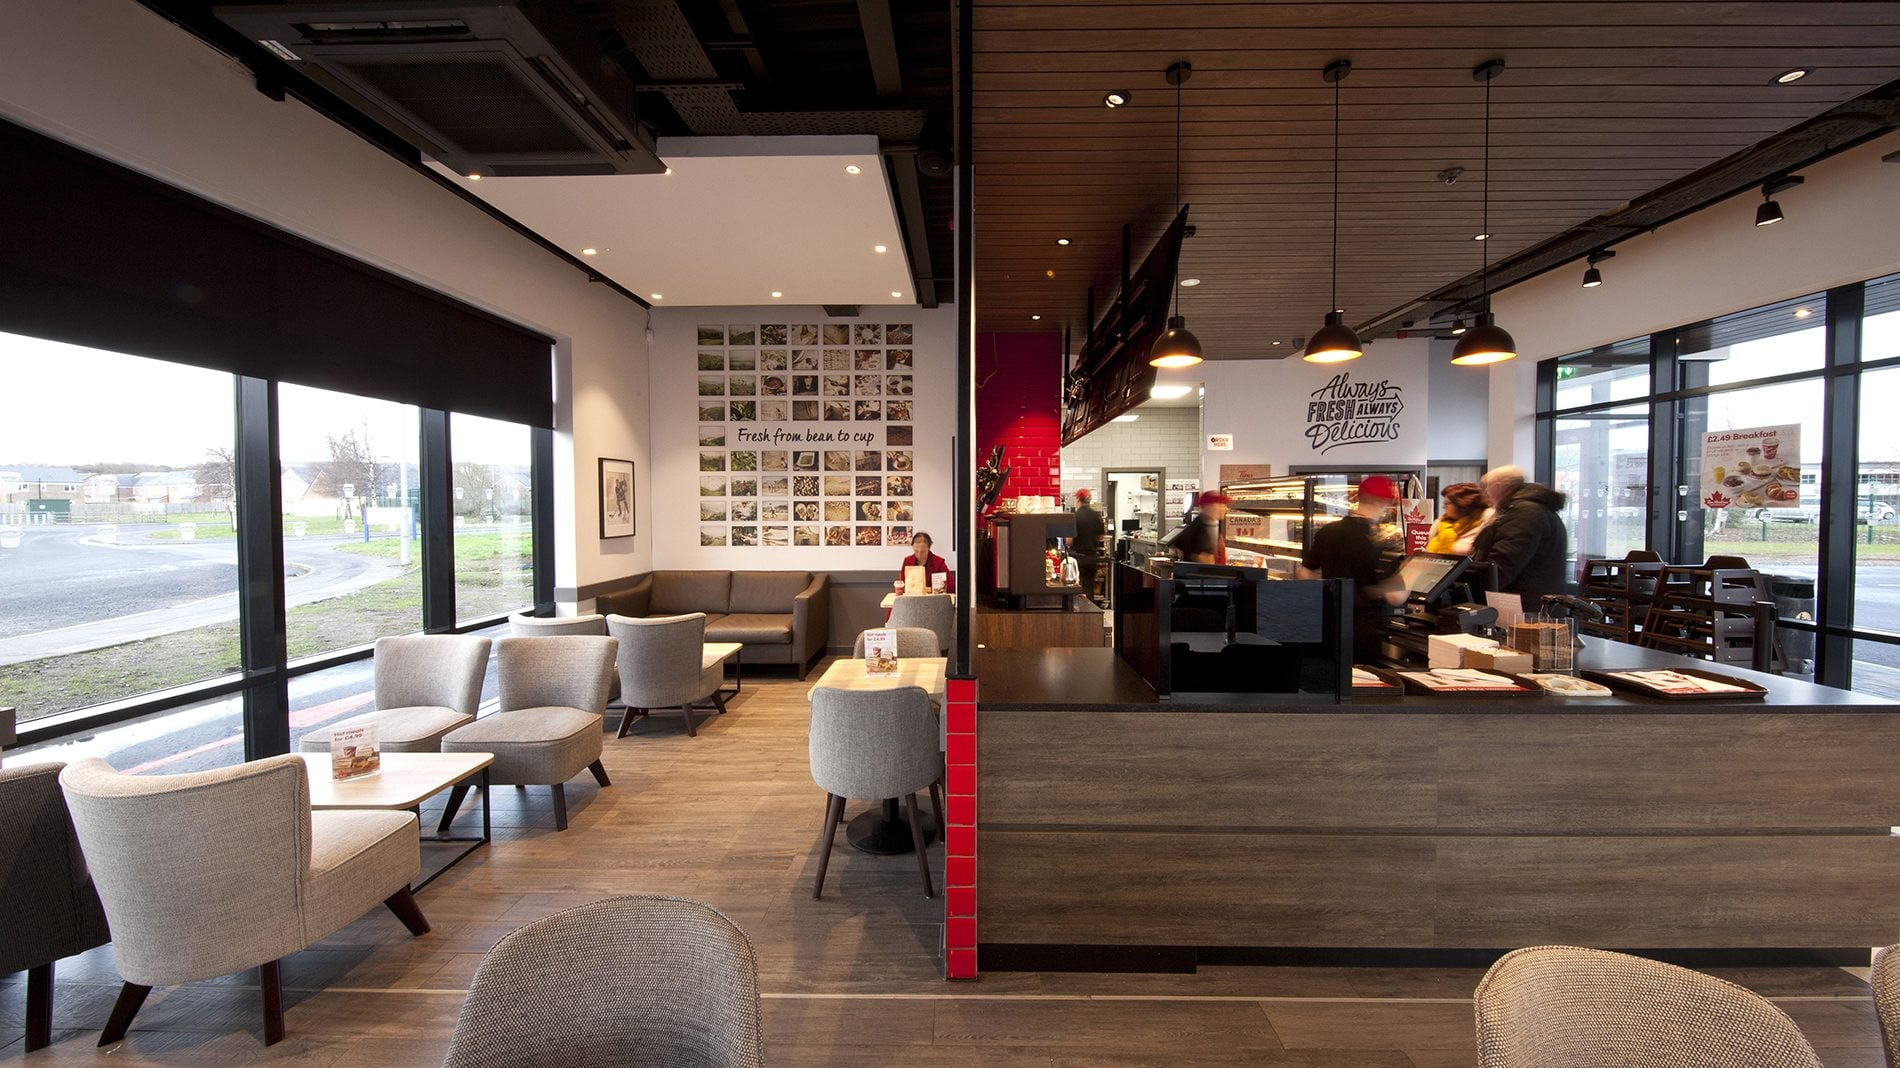 Interior design and wall graphics for Tim Hortons coffee shop